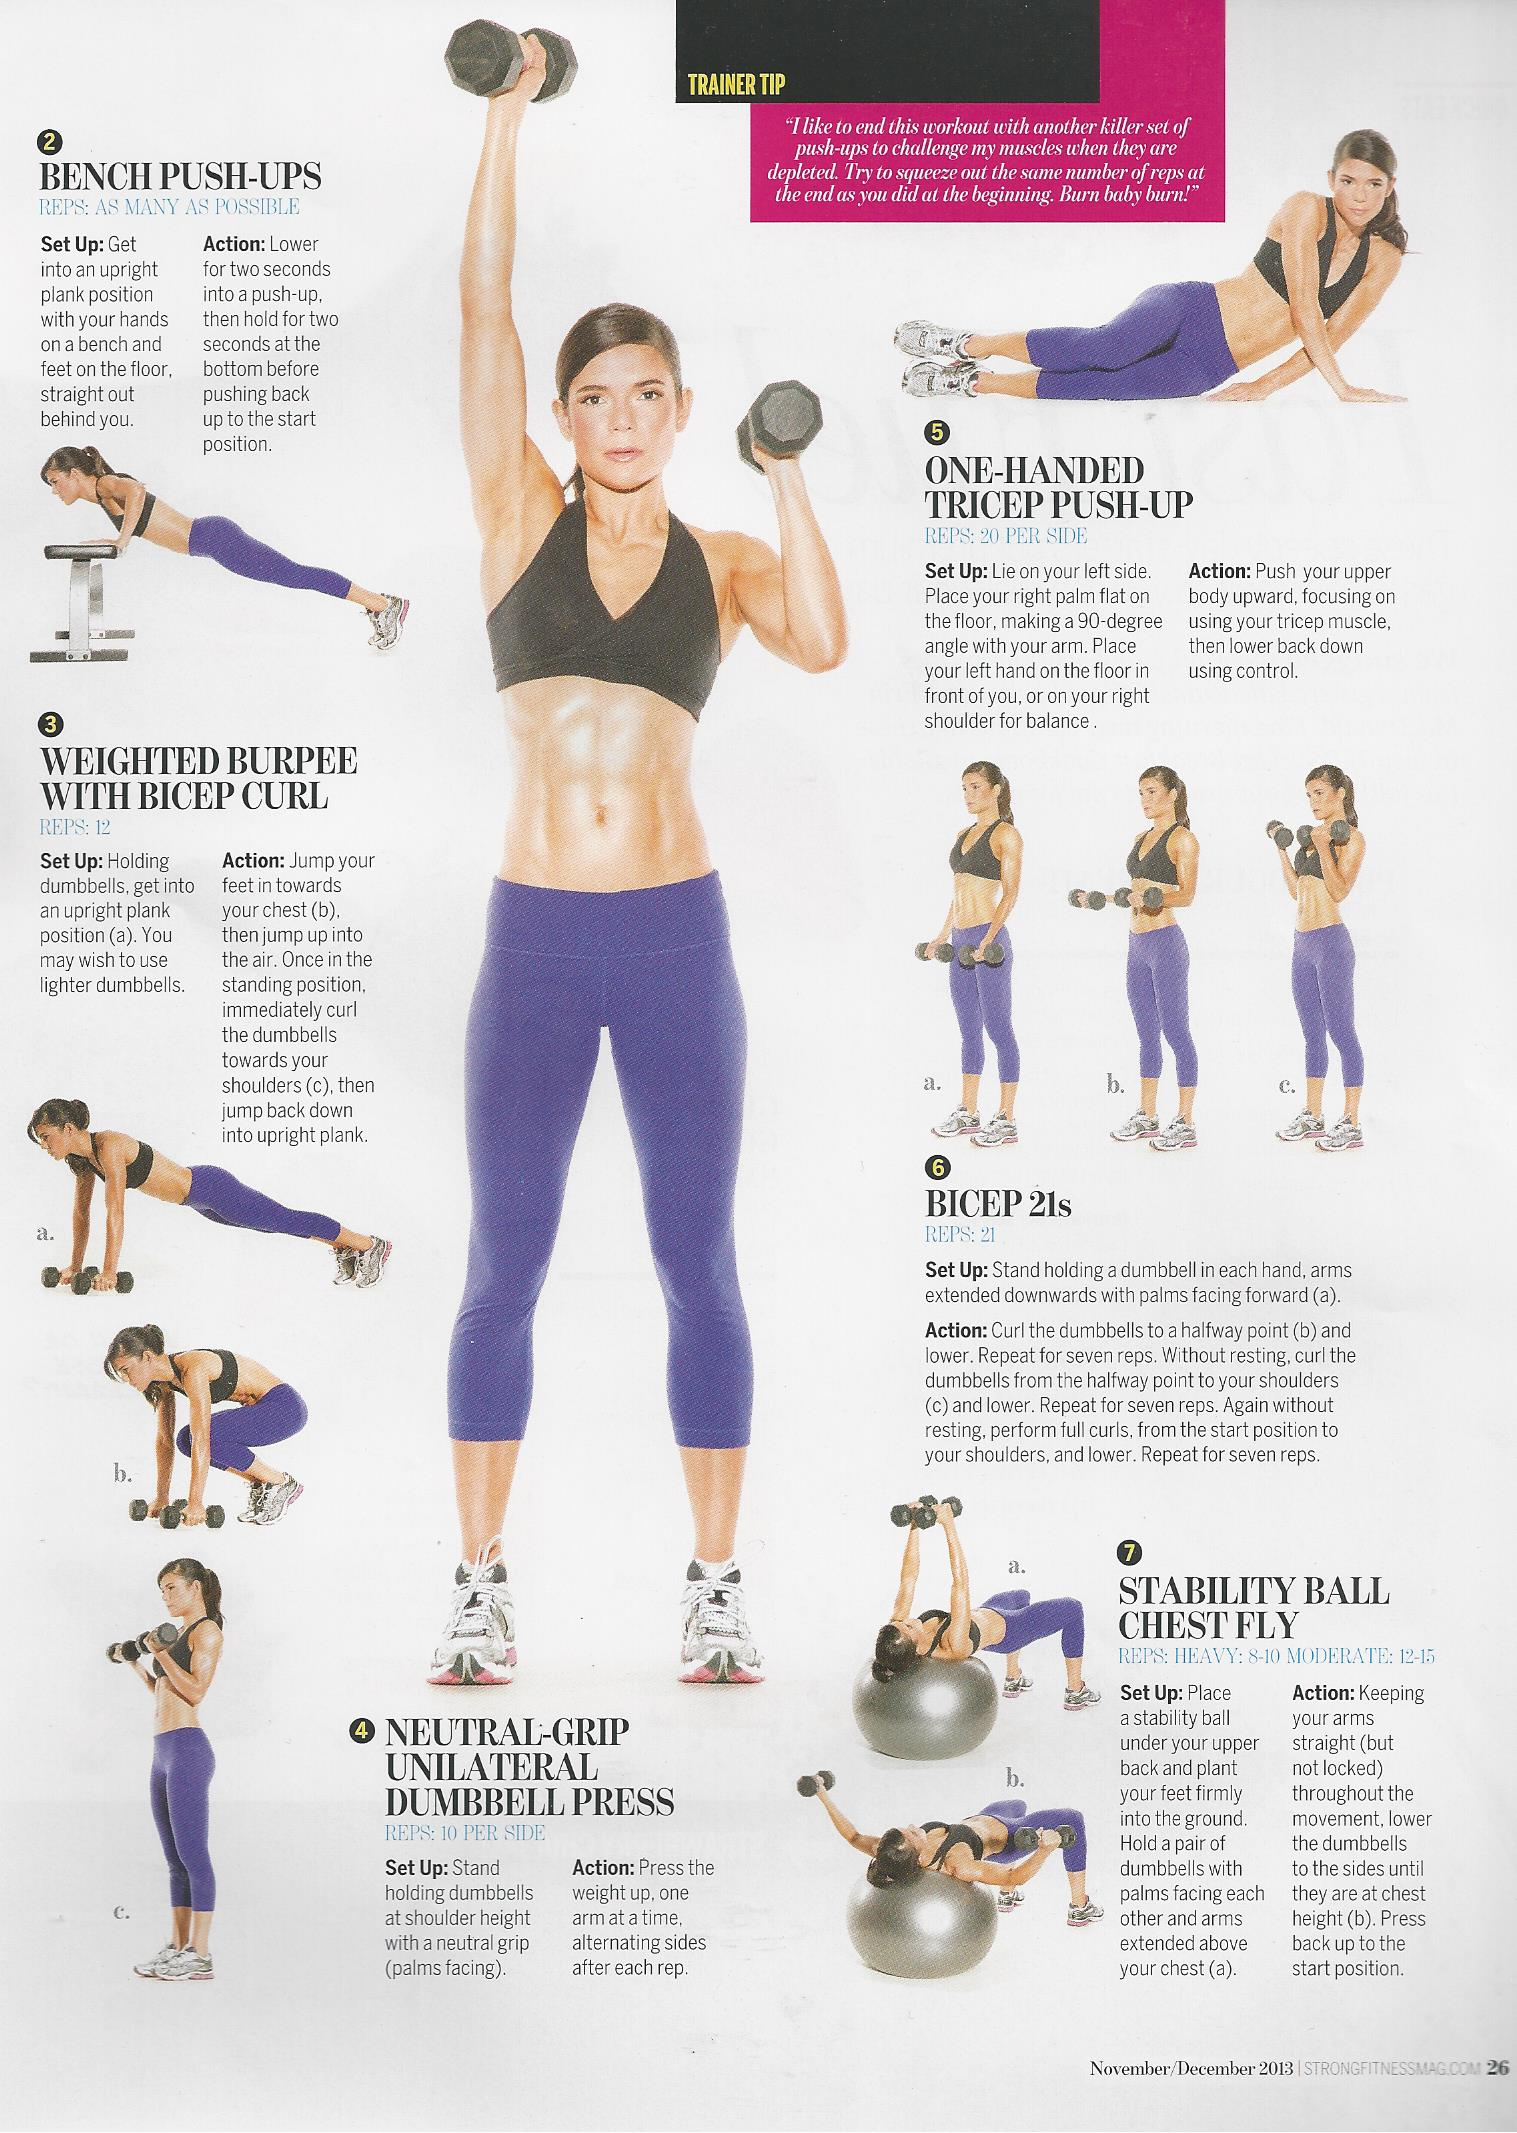 Pin buffie the body weight on pinterest